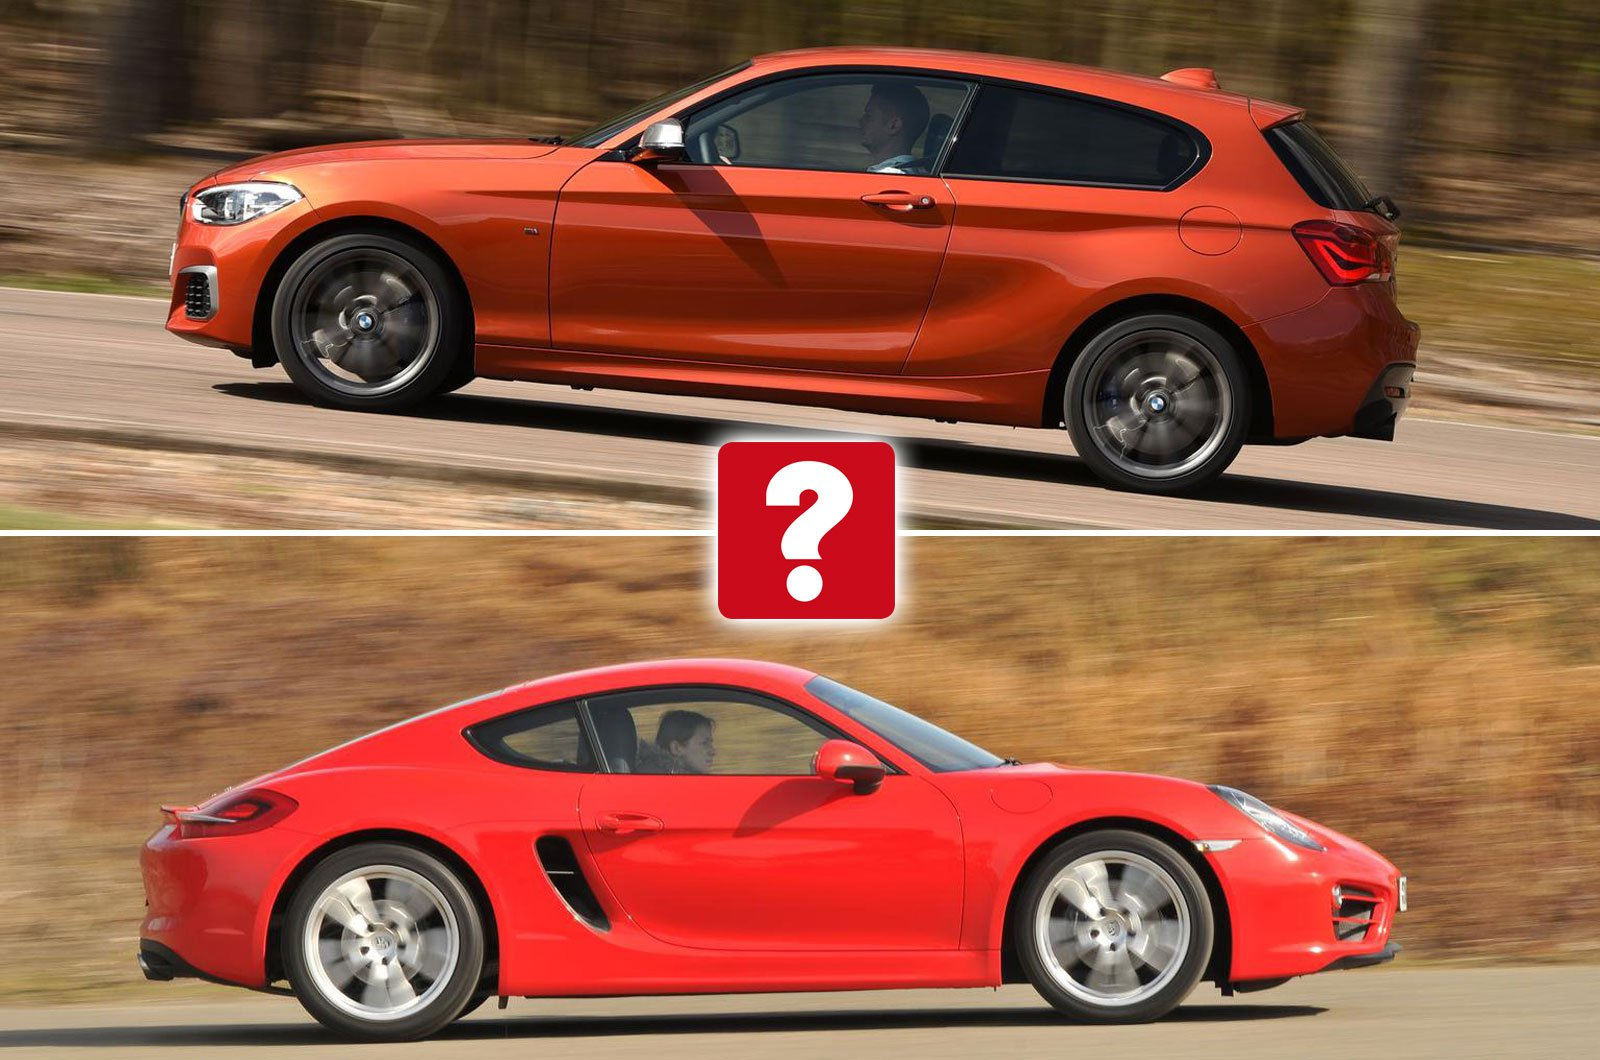 BMW M135i vs Porsche Cayman